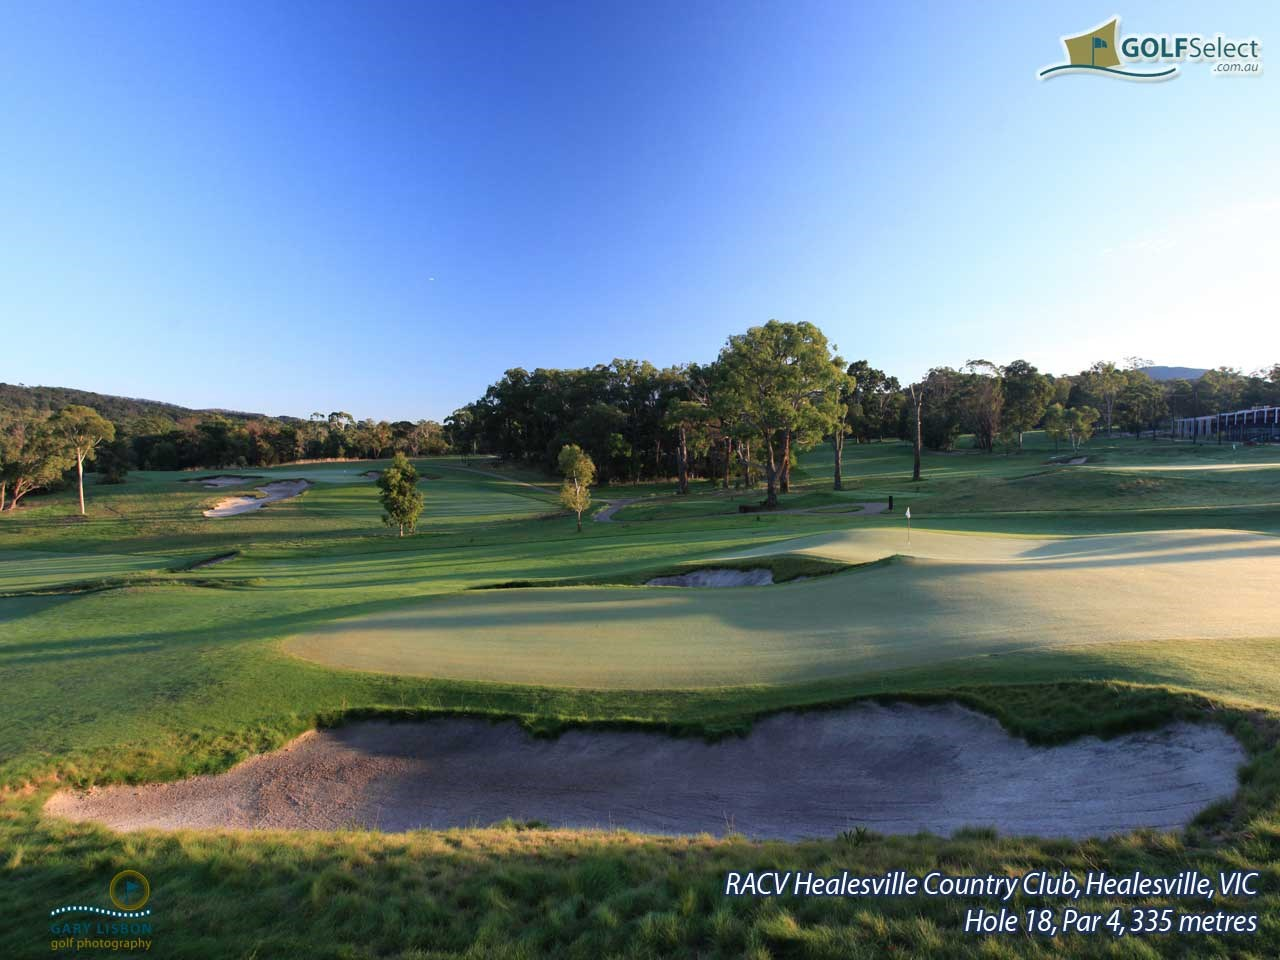 RACV Healesville Country Club Hole 18, Par 4, 335 metres